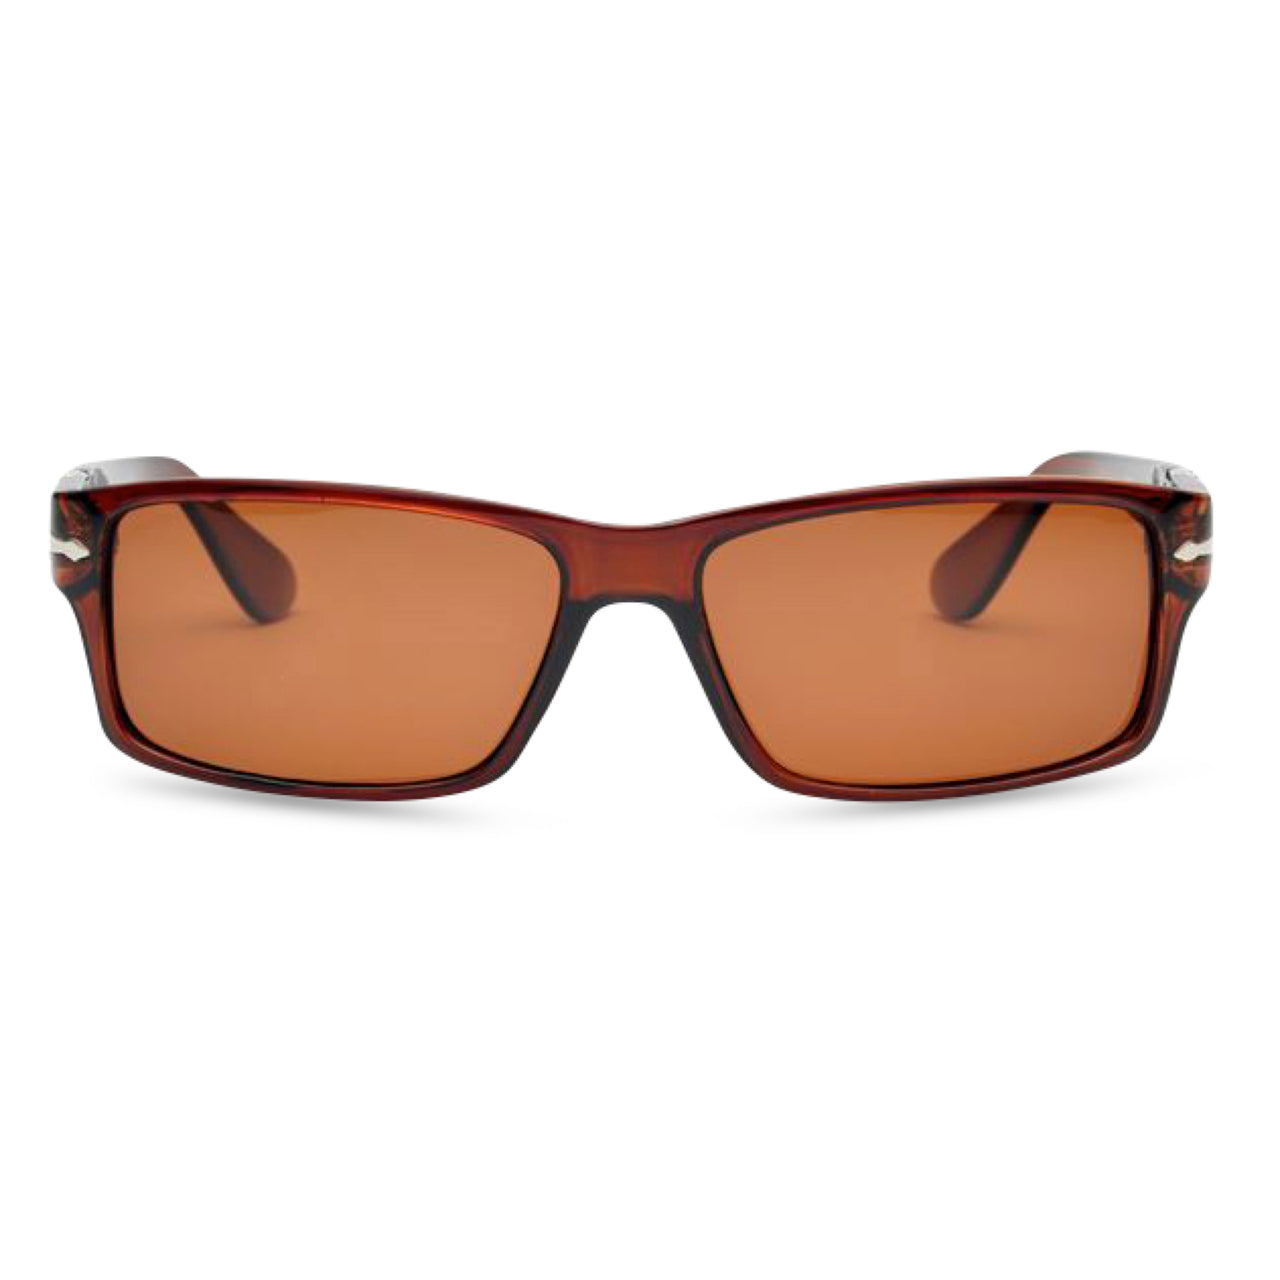 James B - Sunglasses Demi Brown